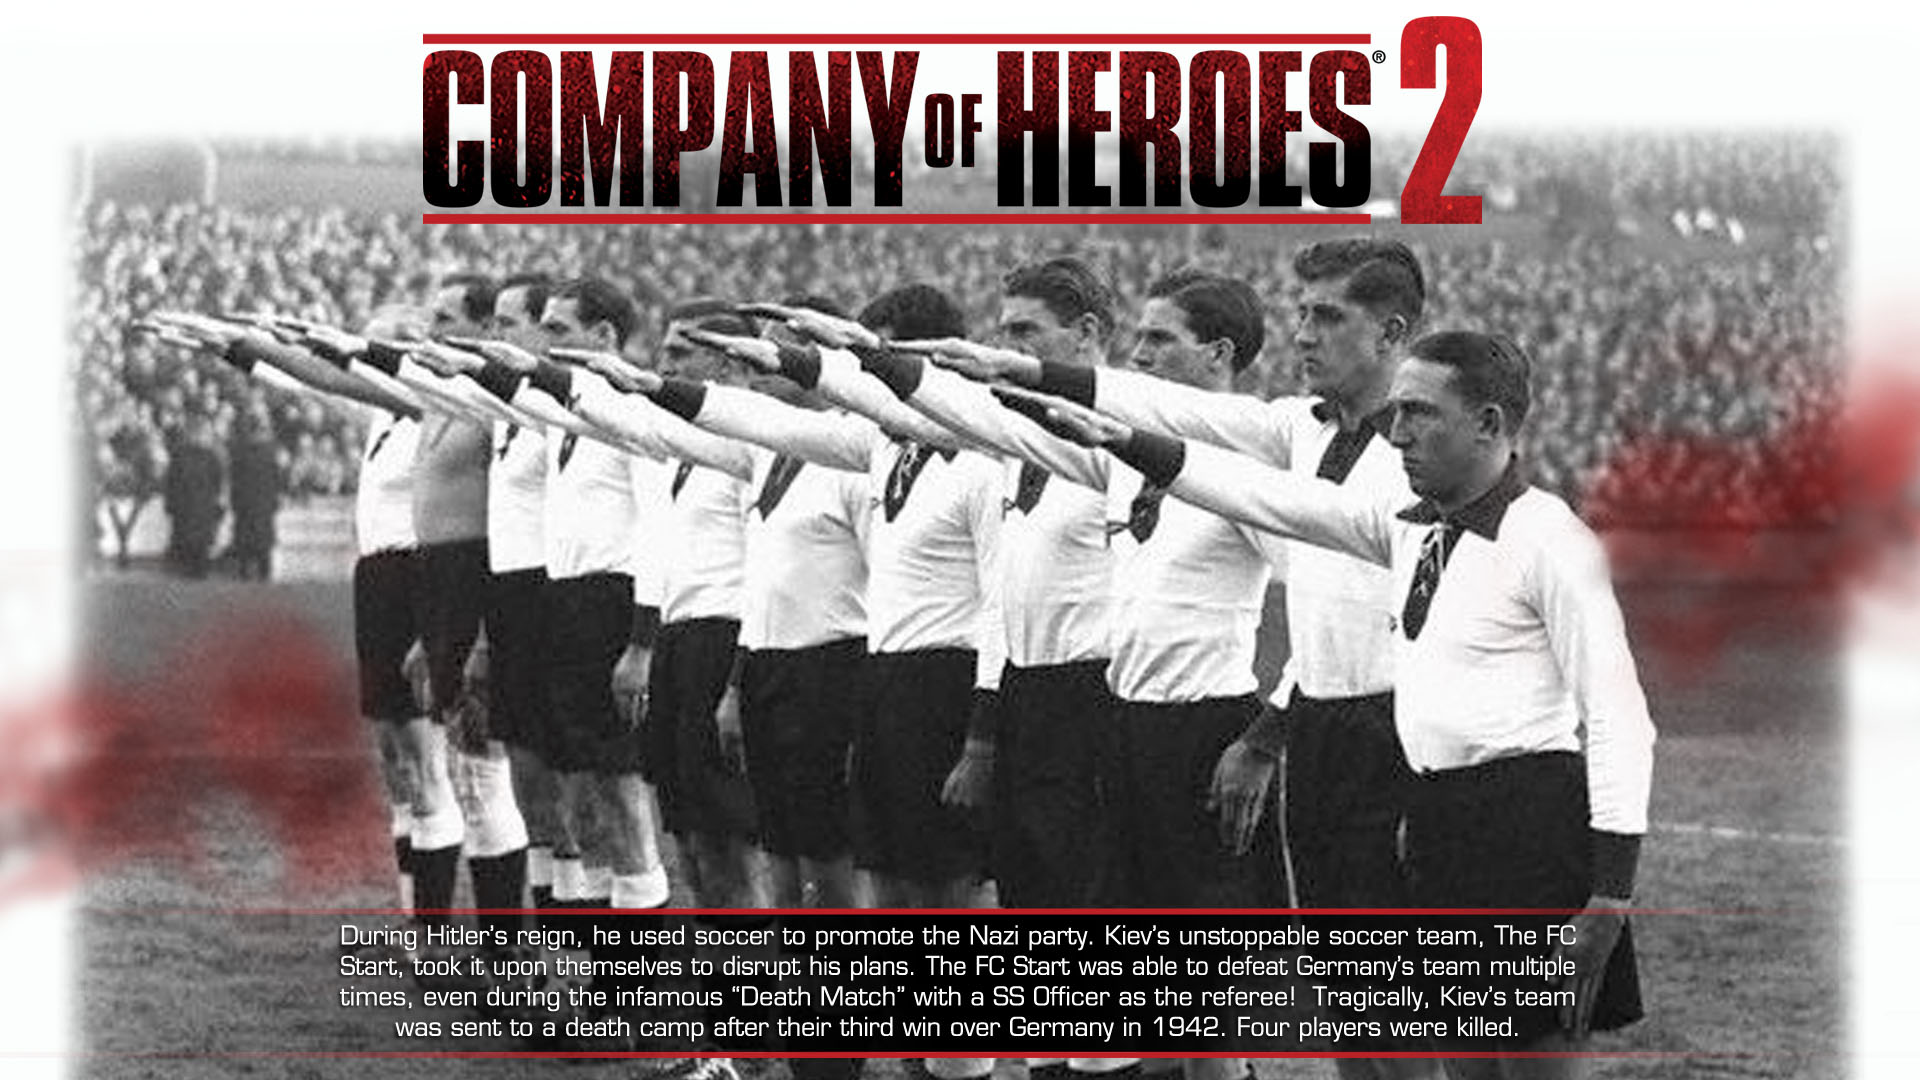 Company of heroes 2 wallpaper 21 wallpapersbq for Wallpaper companies